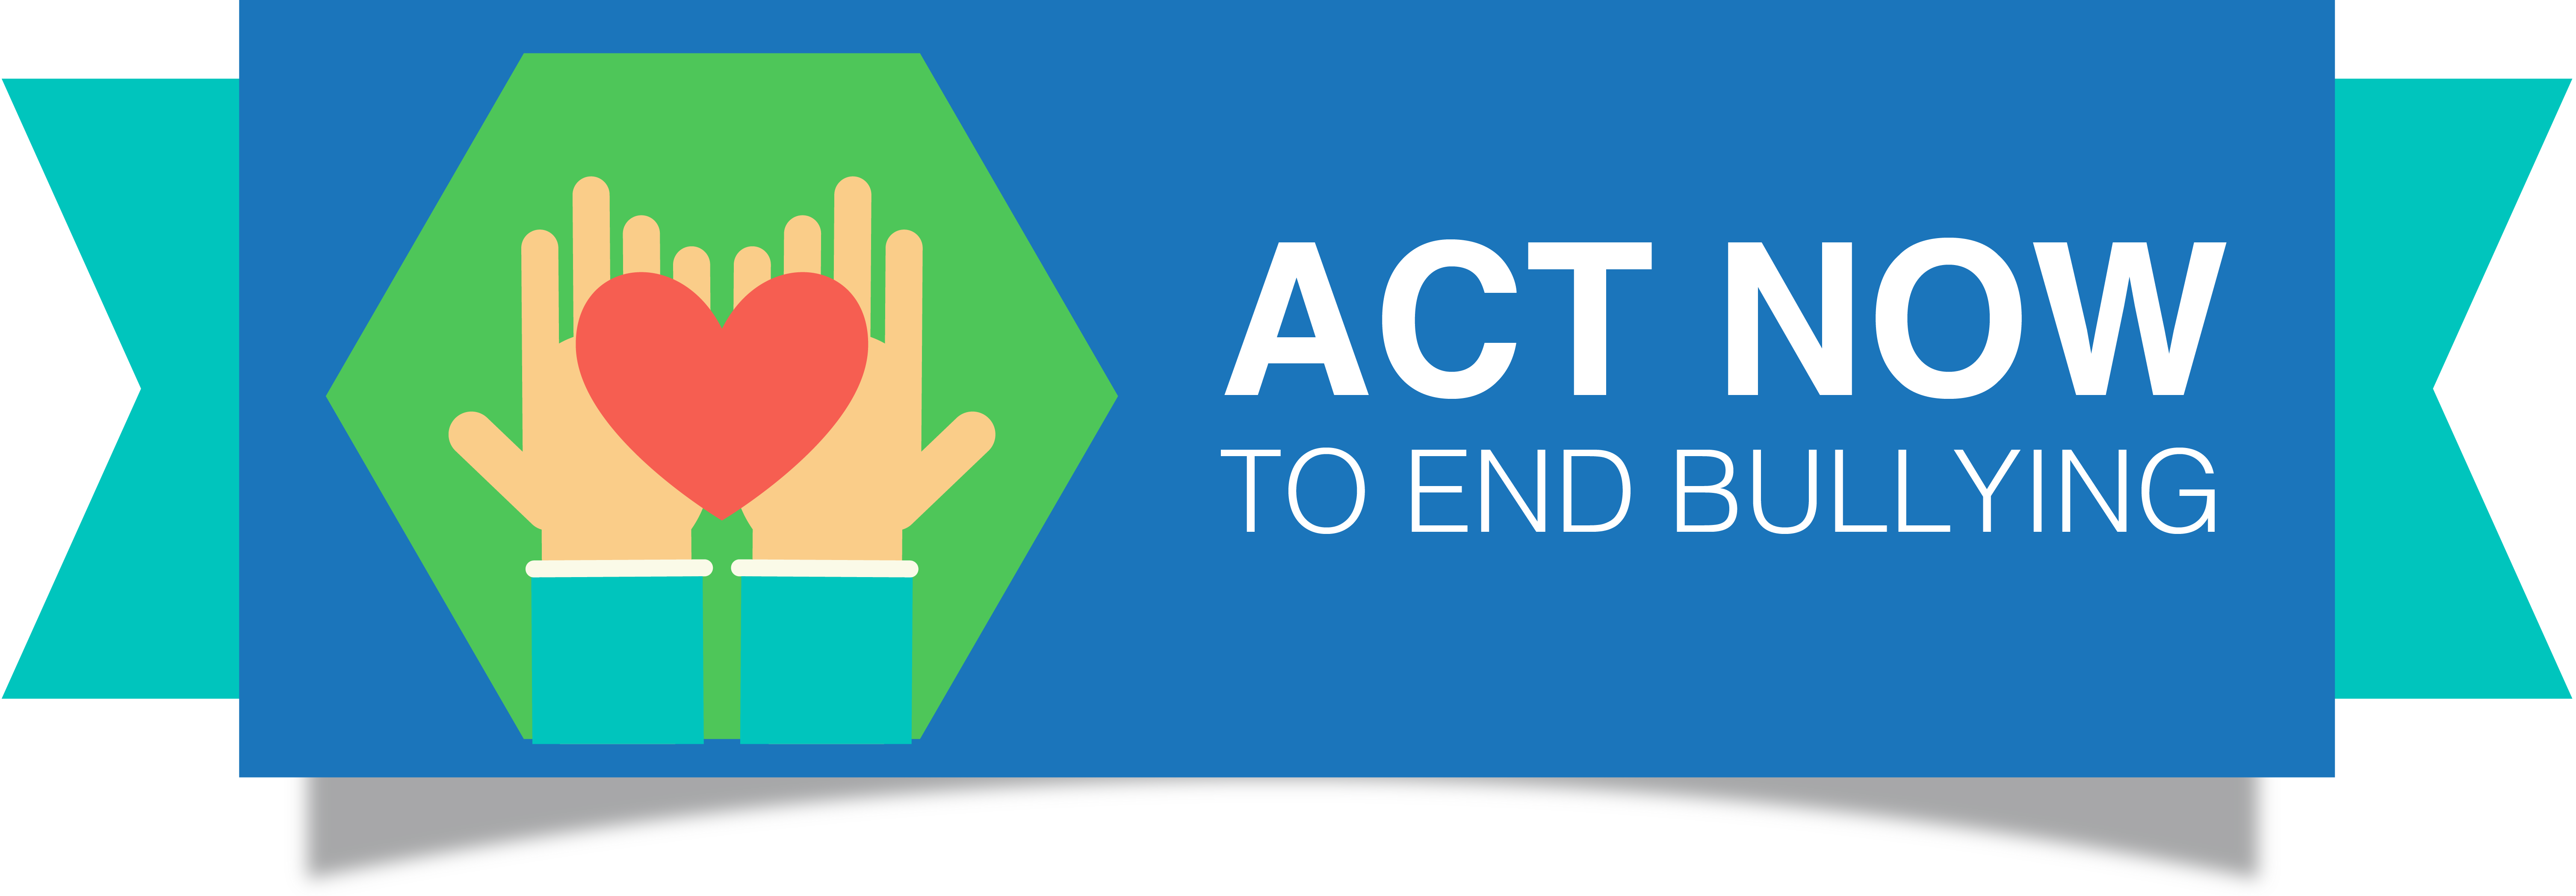 act now_page banner-02